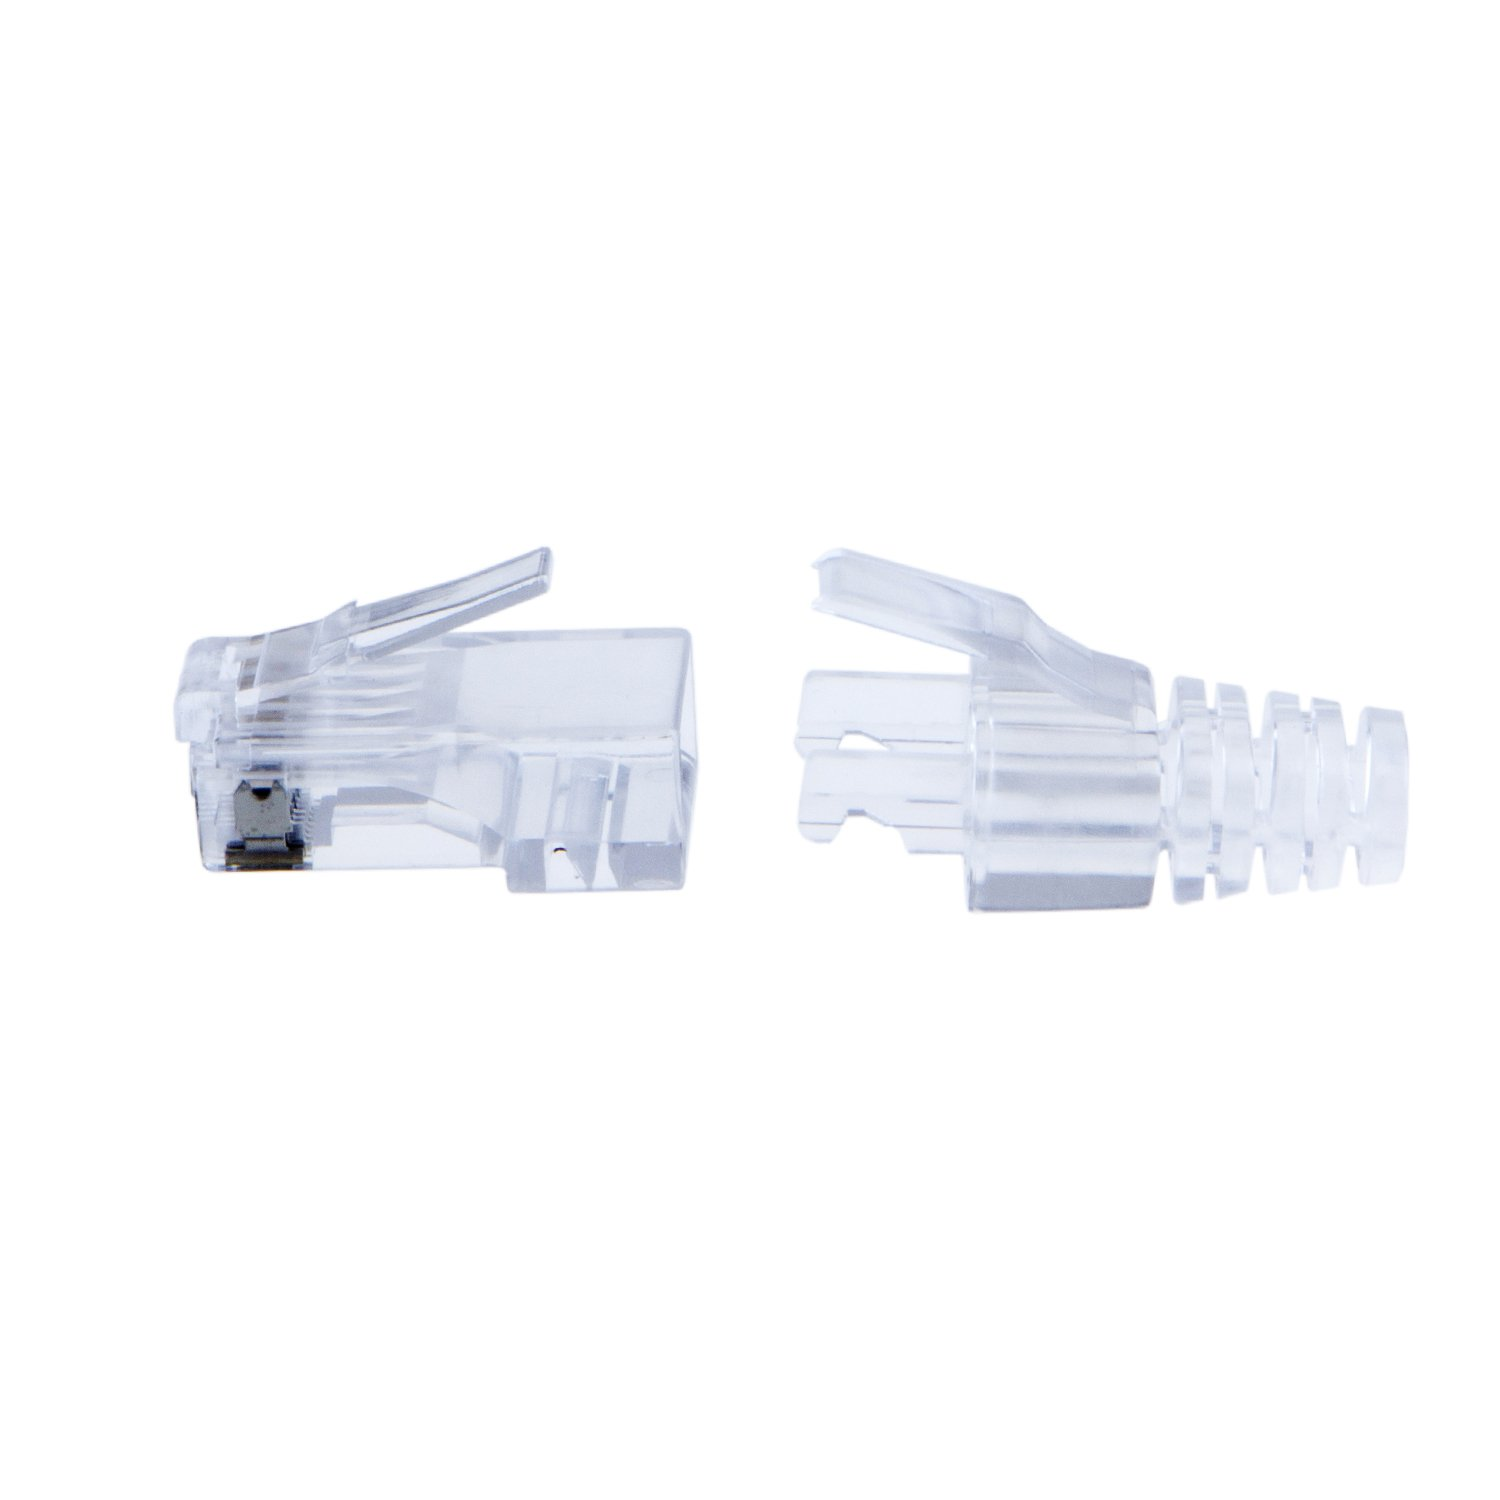 Cablecreation 100 Pack Cat 6 Rj45 Plug With Hood 6e Modular Jack Connector To Wiring Harness For Transparent Computers Accessories